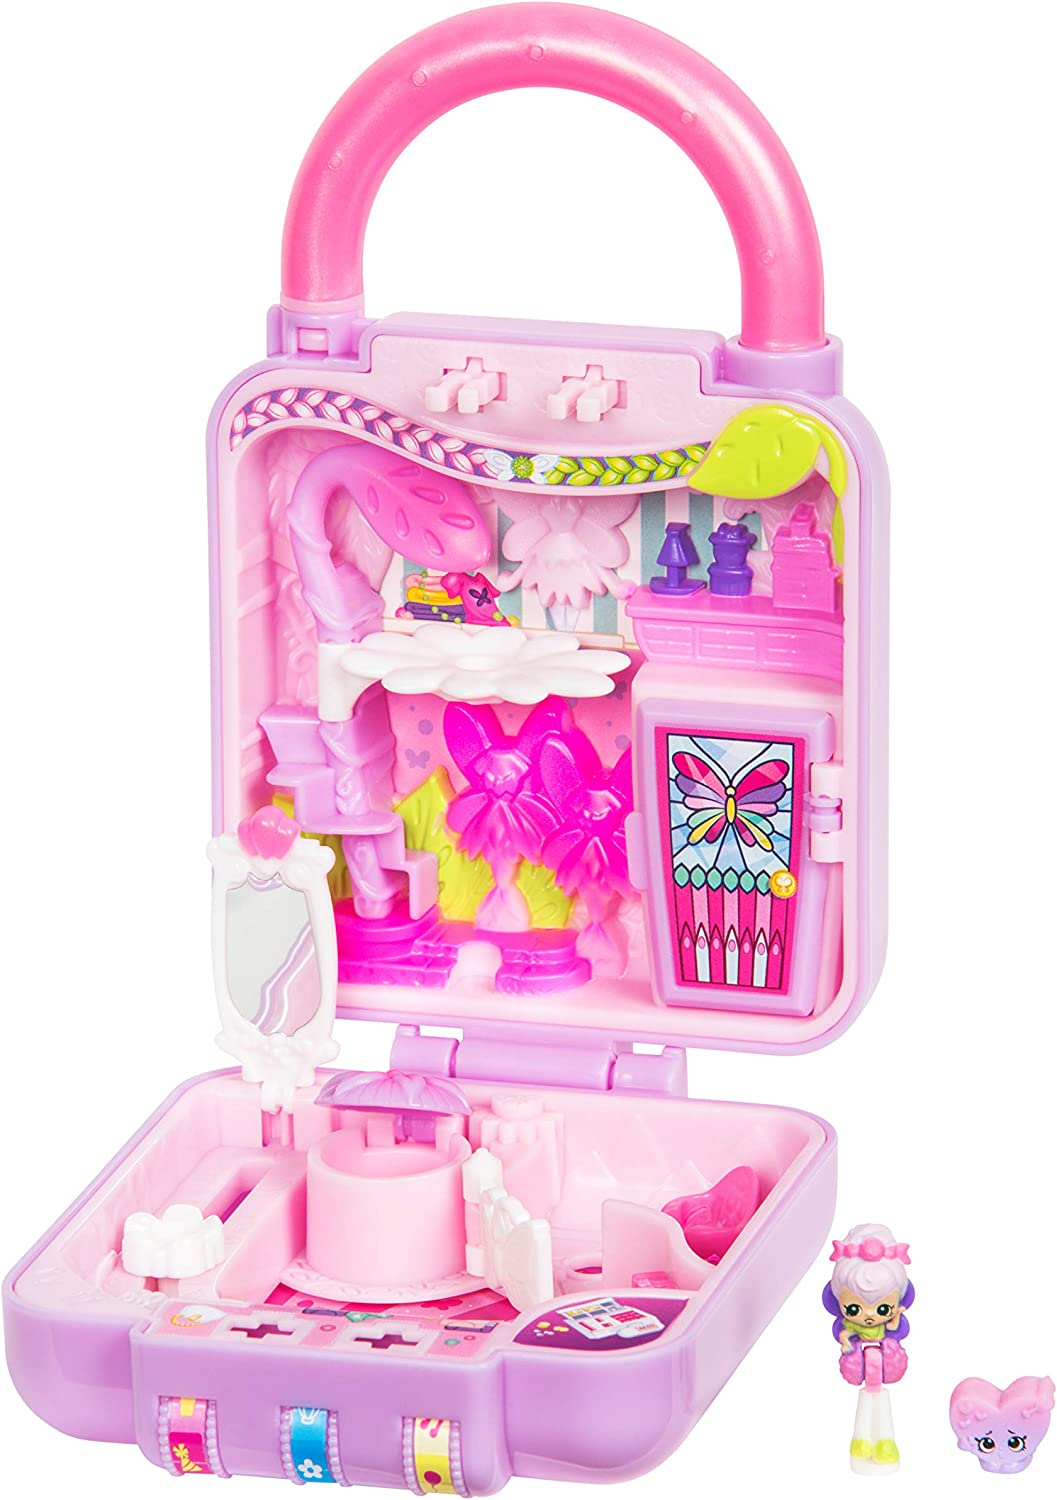 Shopkins Lil' Secrets Playset - Collectable Mini Playset with Secret with Shoppie & Shopkin Toy Inside- Fab Fairy Fashions